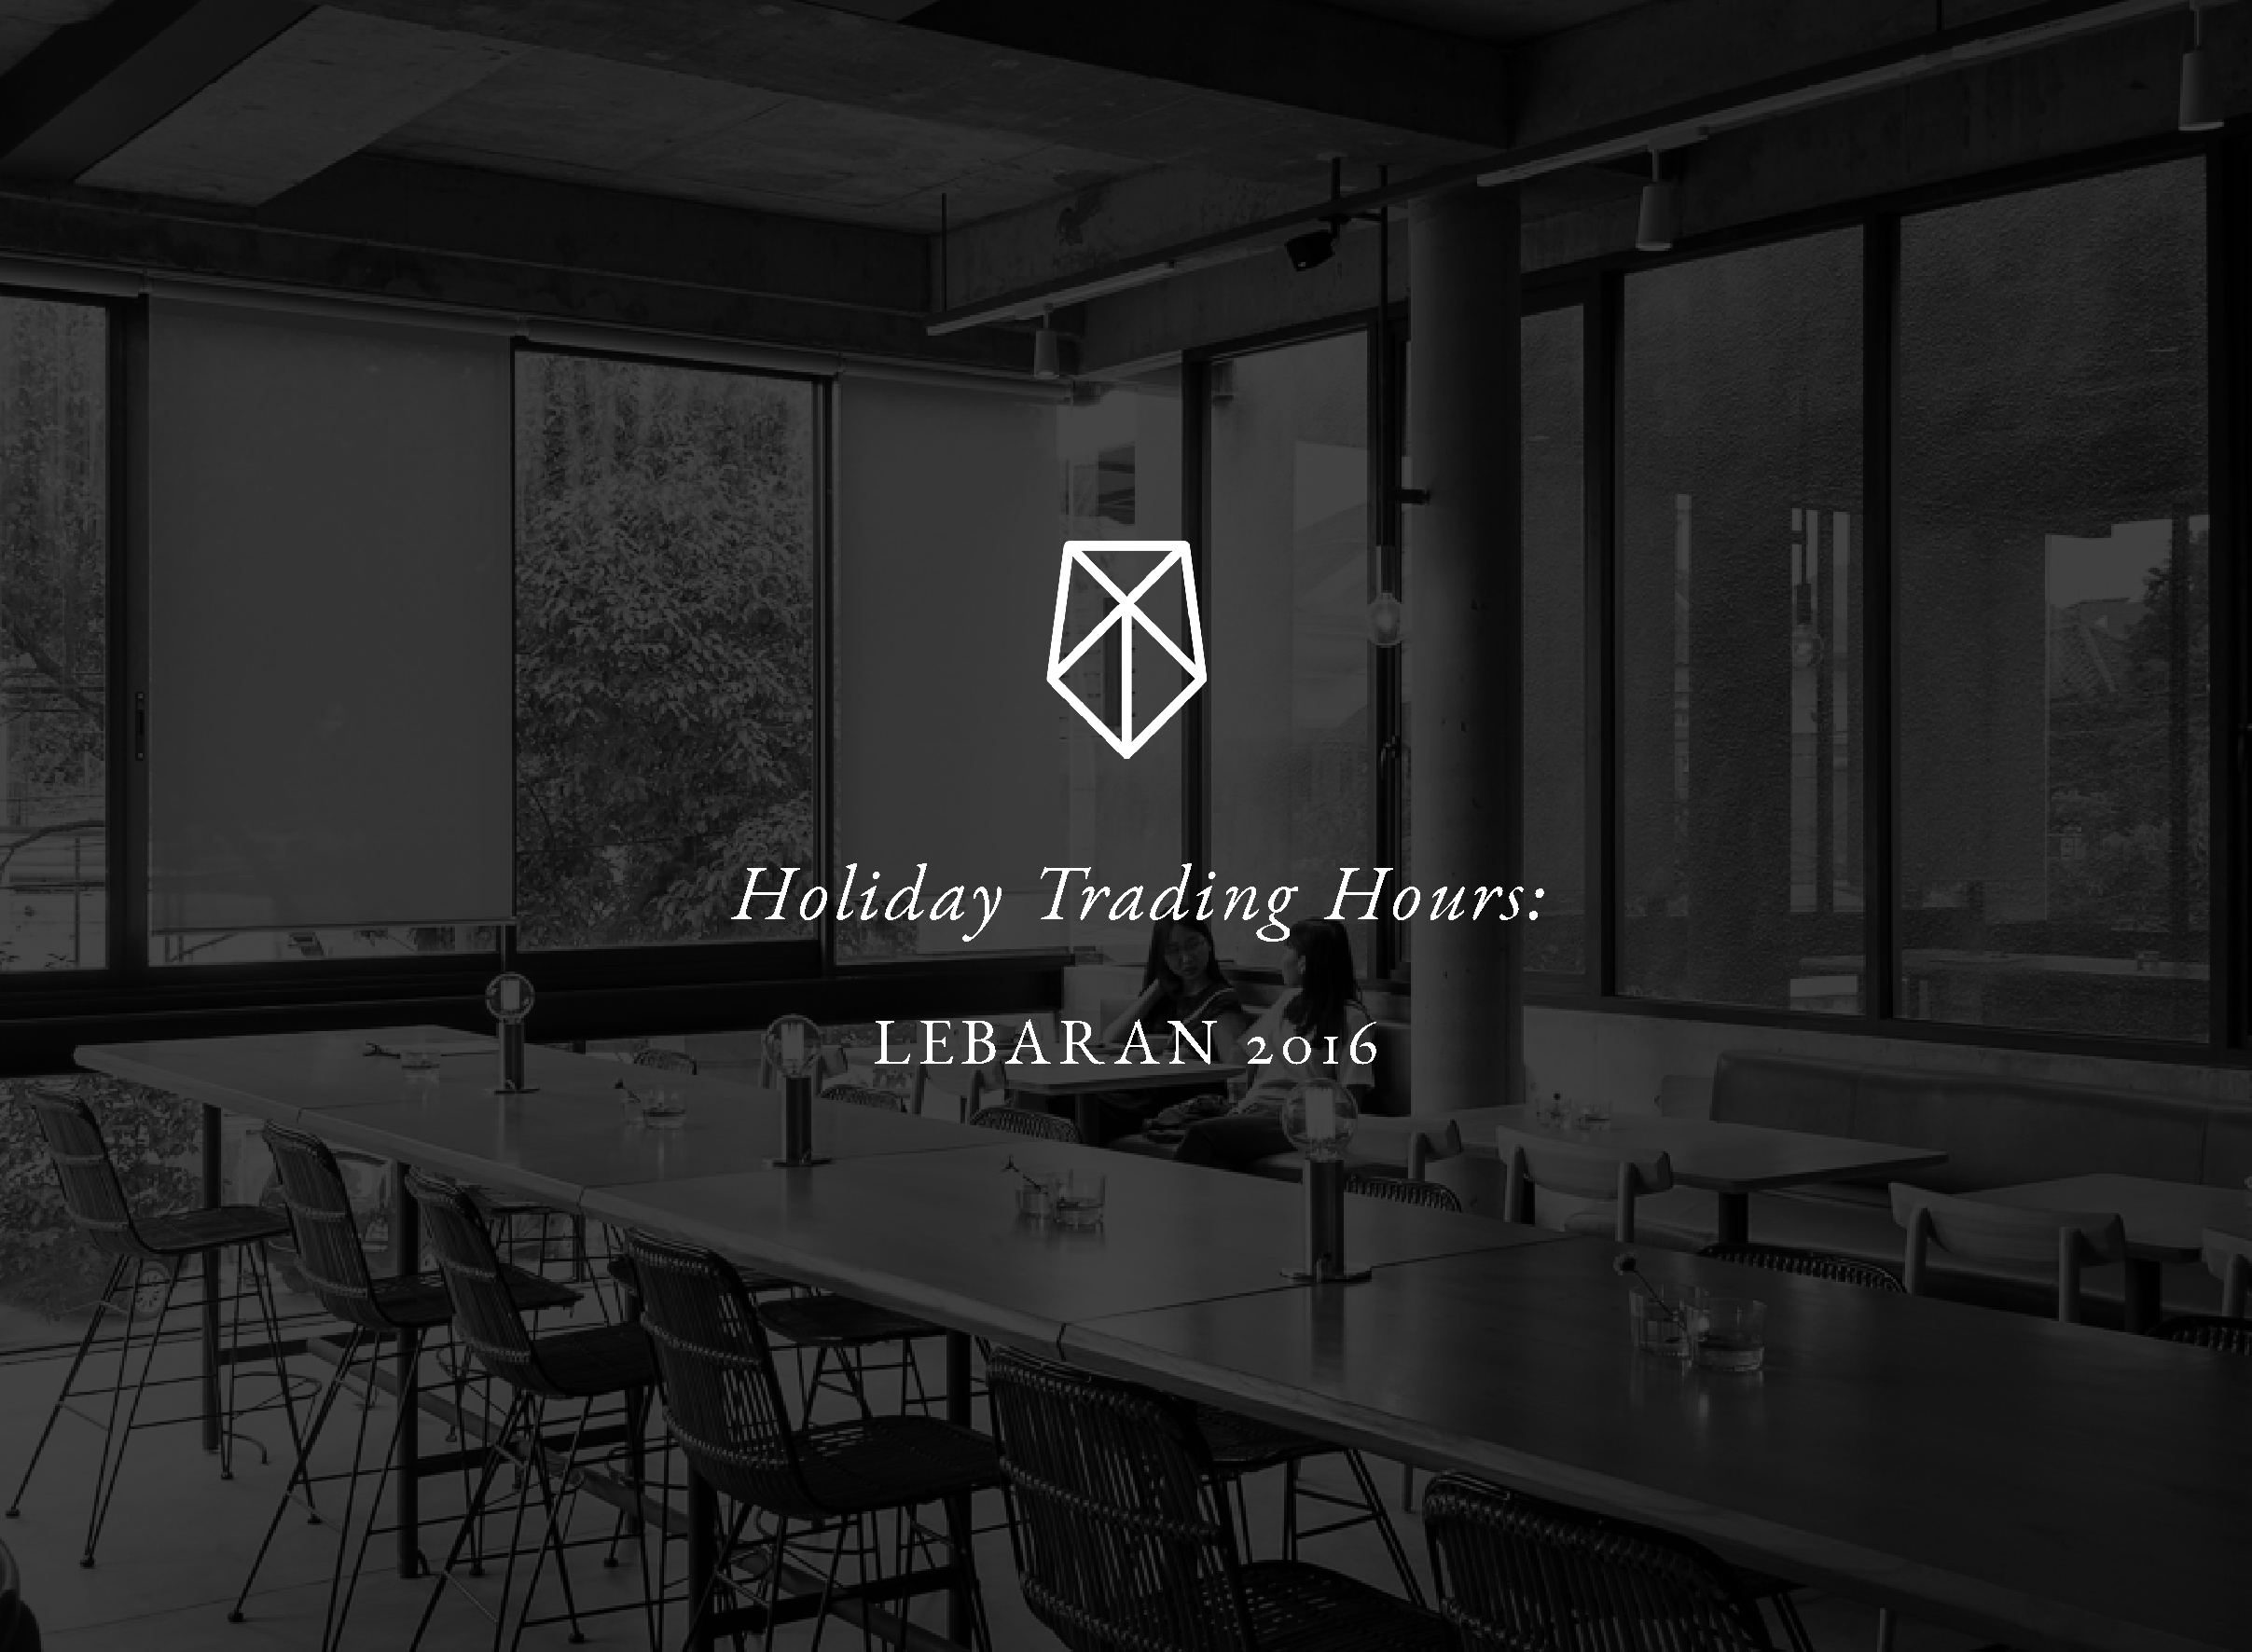 Holiday Trading Hours: Lebaran 2016